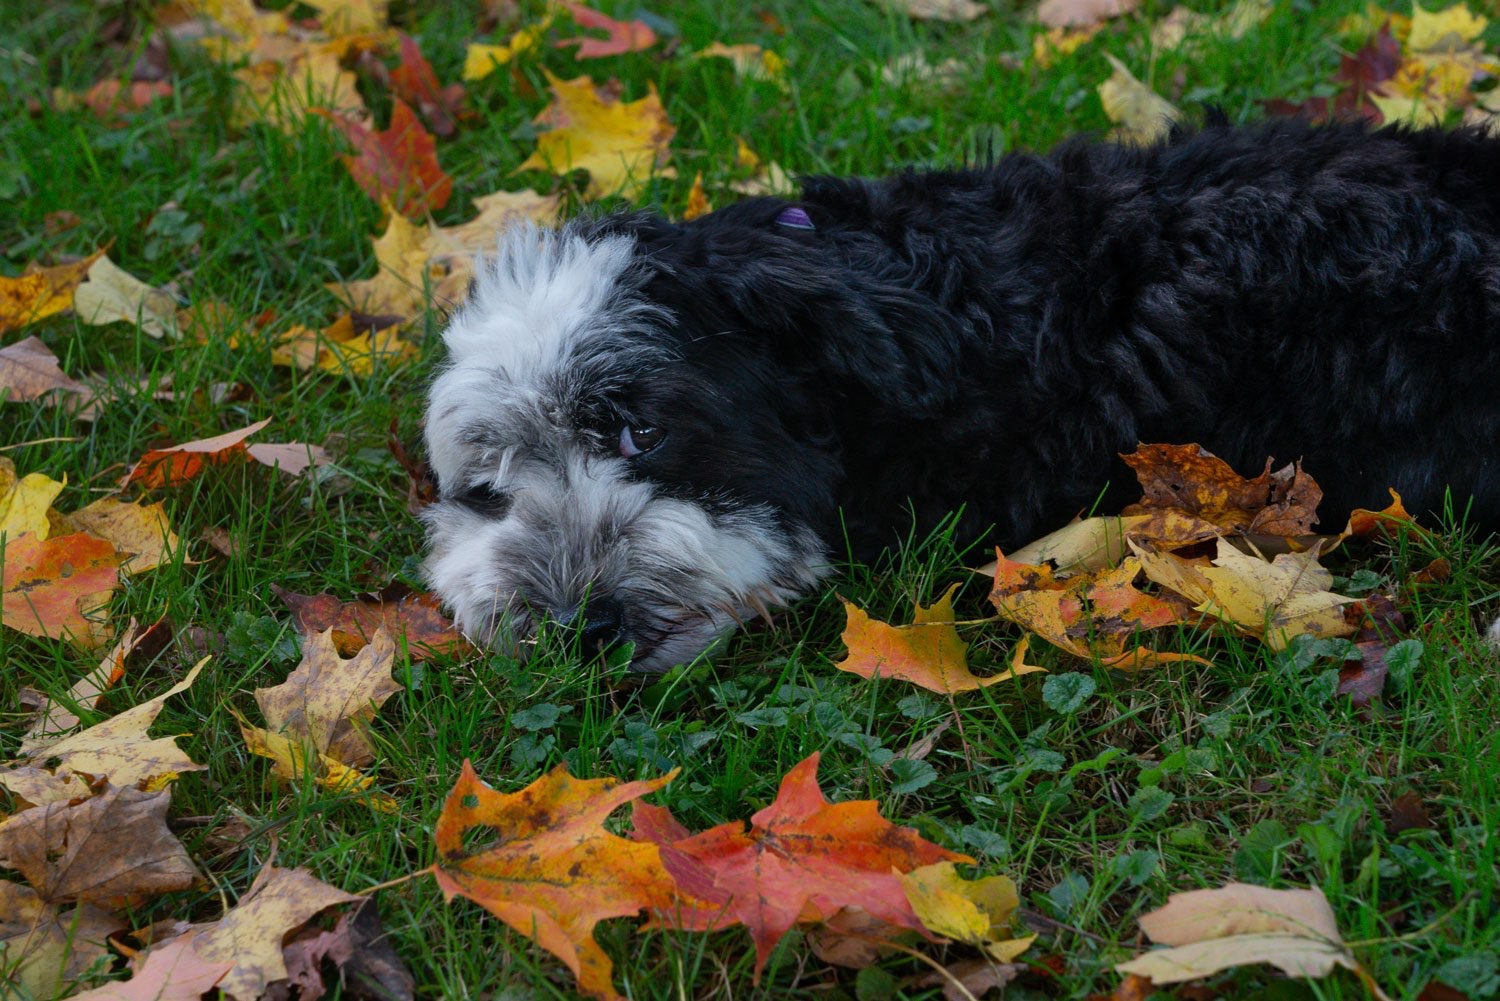 Fred the Hamanese, my model my muse and my seducer resting in the grass among autumn leaves. photo johnstuart studio-compress.jpg